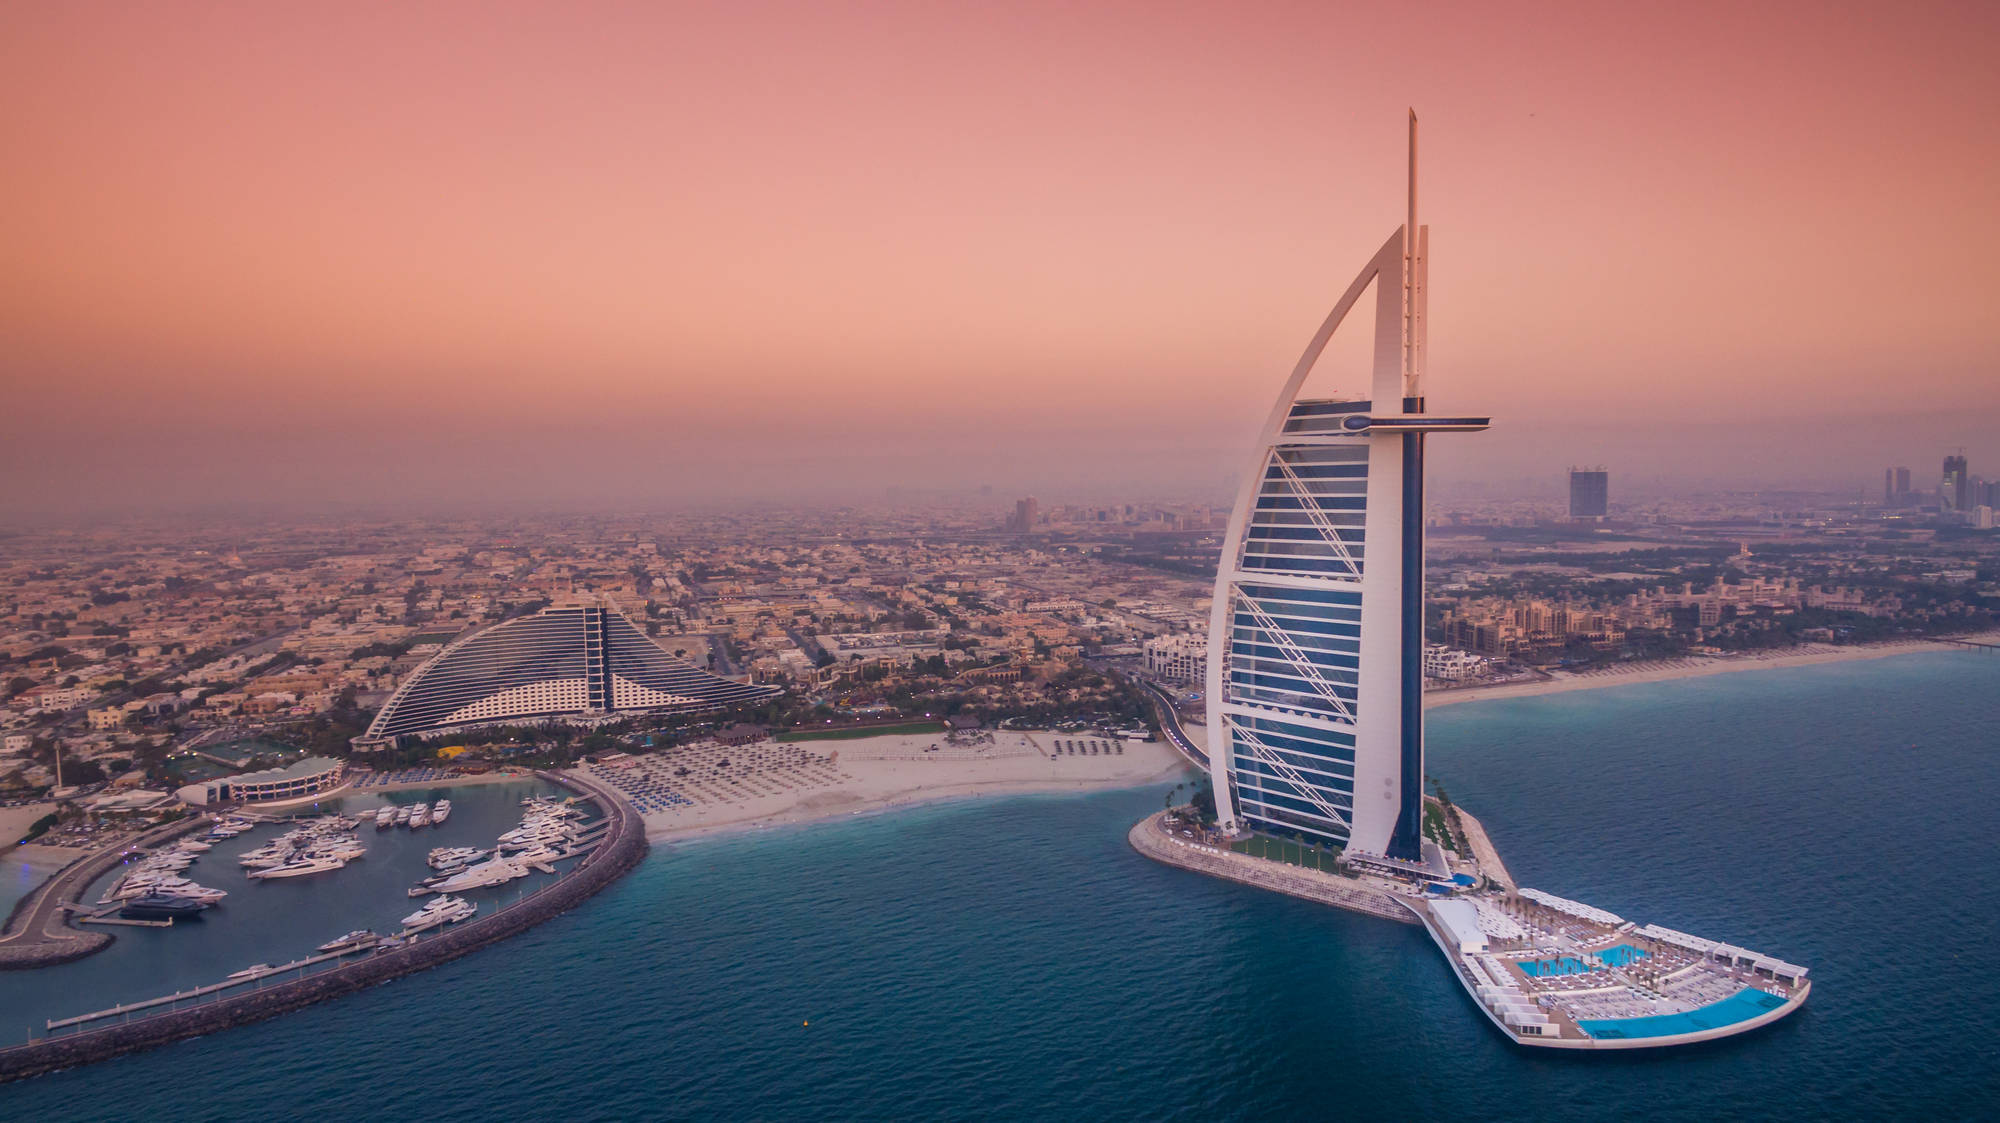 Burj al arab inside the world s most luxurious hotel for Burj al arab the most luxurious hotel